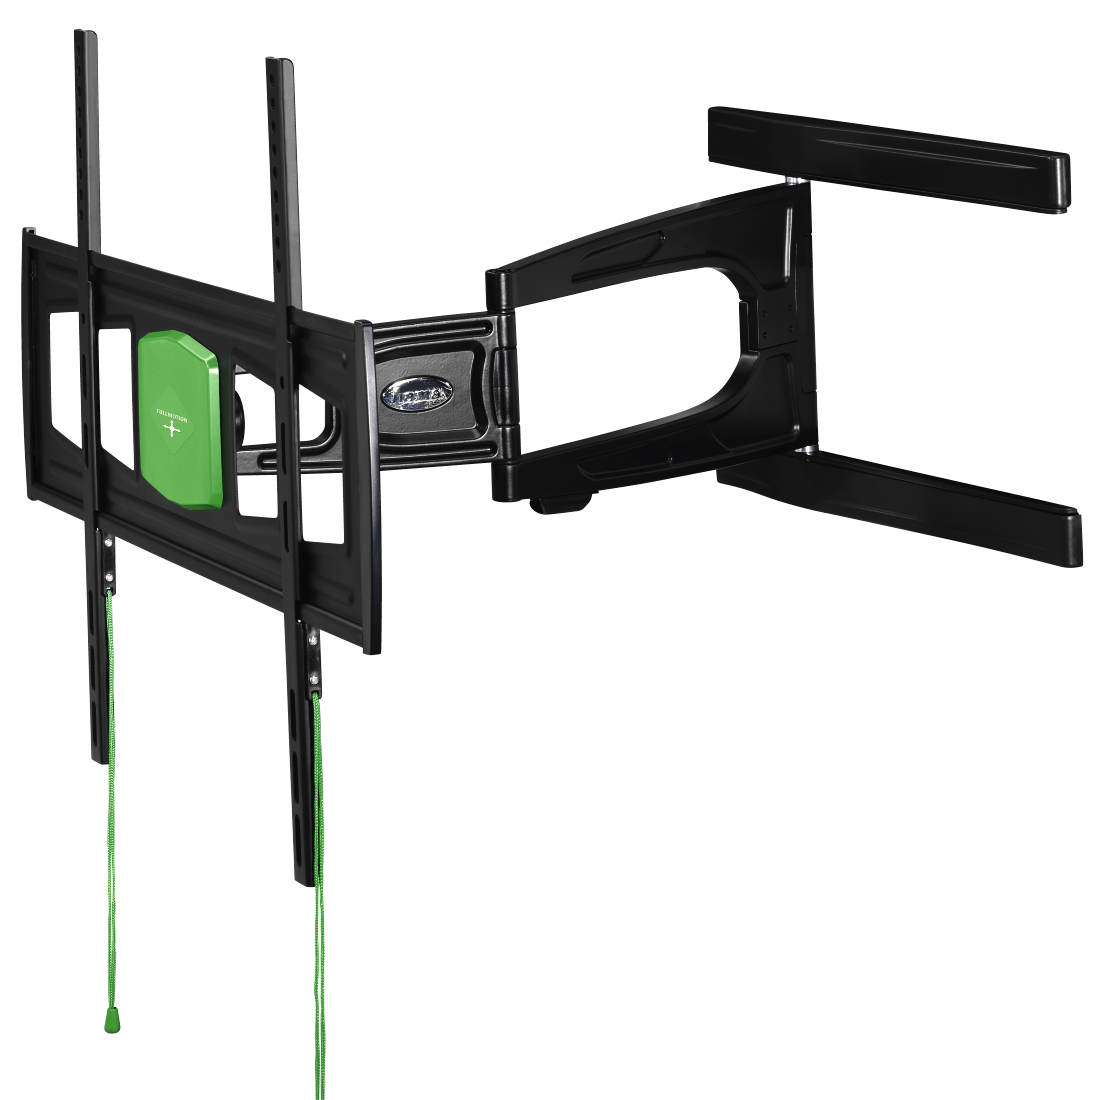 "abx2 High-Res Image 2 - Hama, Ultraslim FULLMOTION TV Wall Bracket, 3 Stars, 165cm (65""), 2 Arm, black"